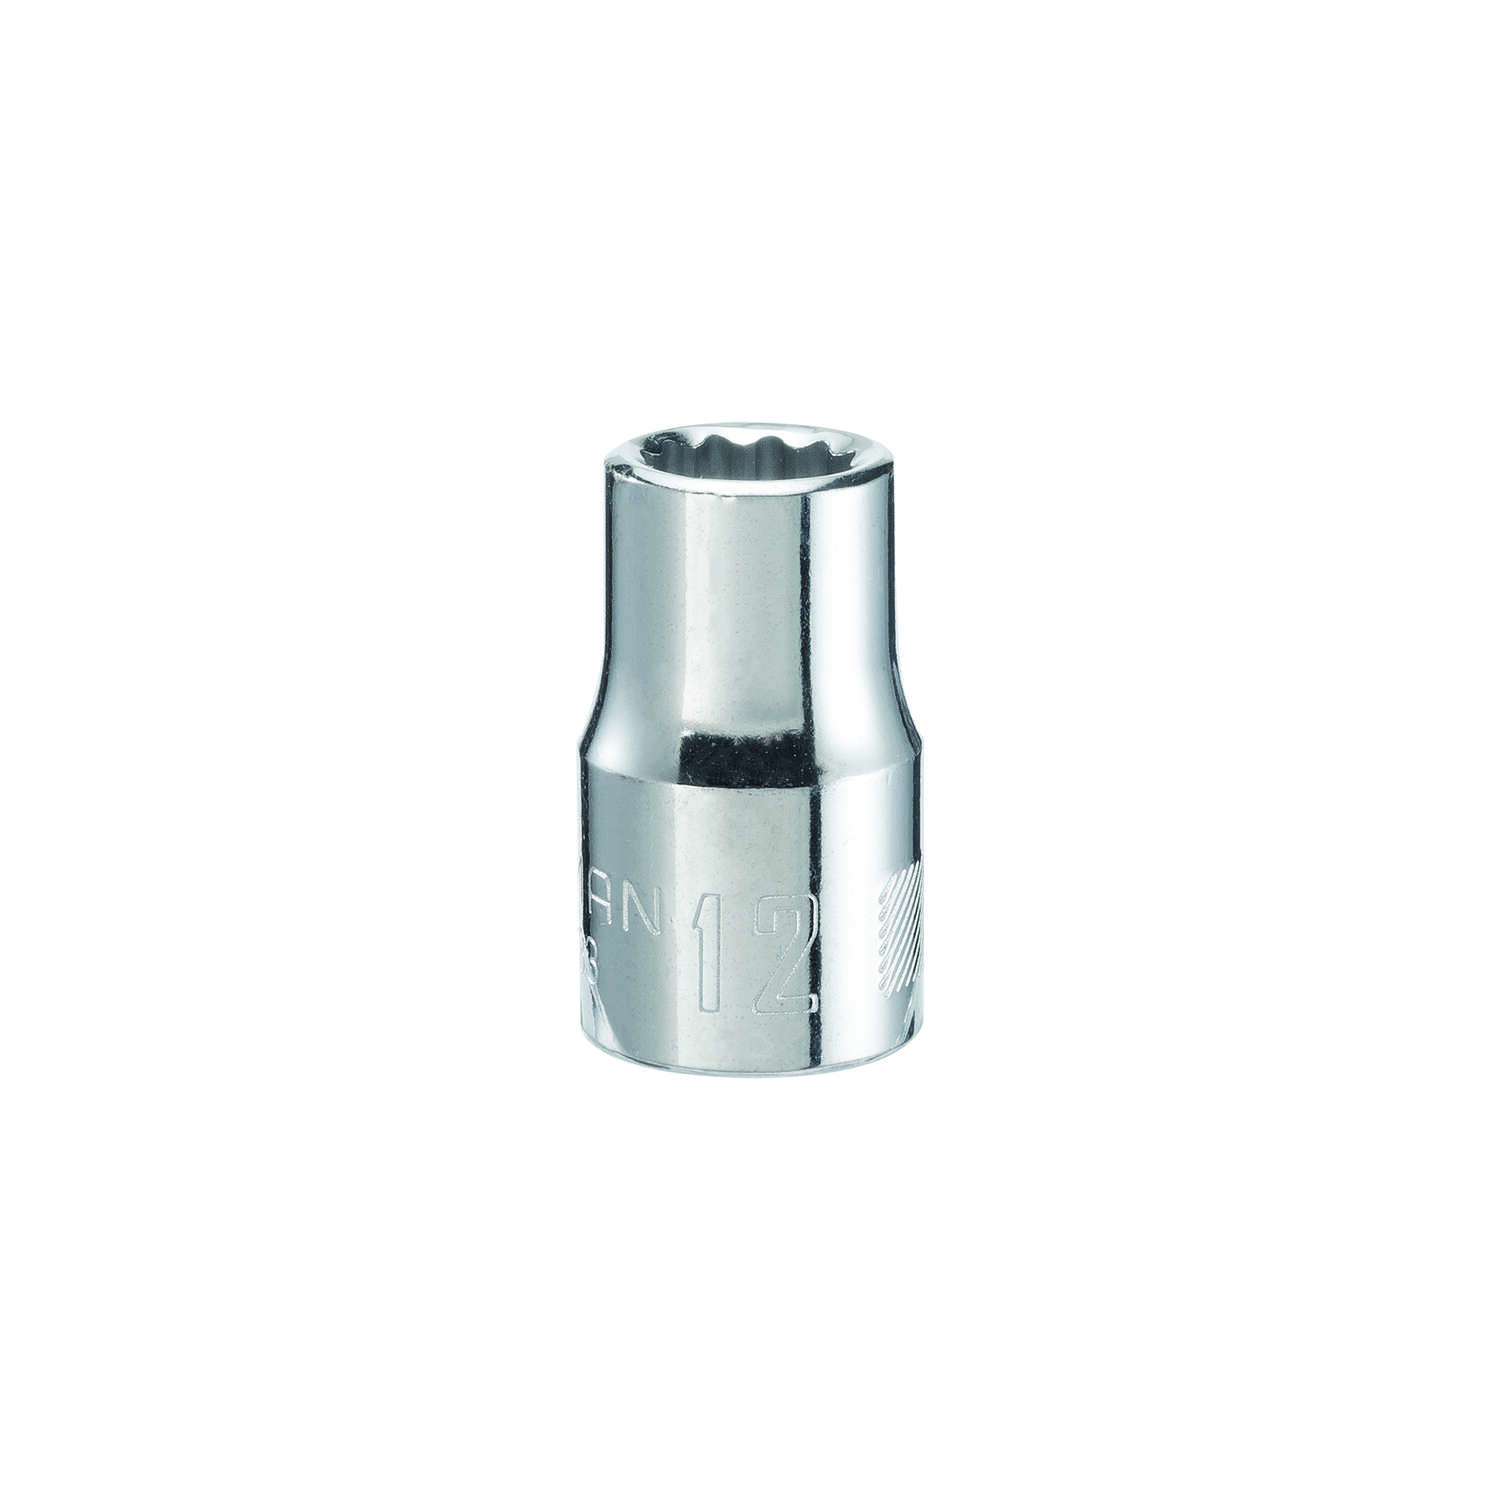 Craftsman  12 mm  x 1/2 in. drive  Metric  12 Point Standard  Socket  1 pc.